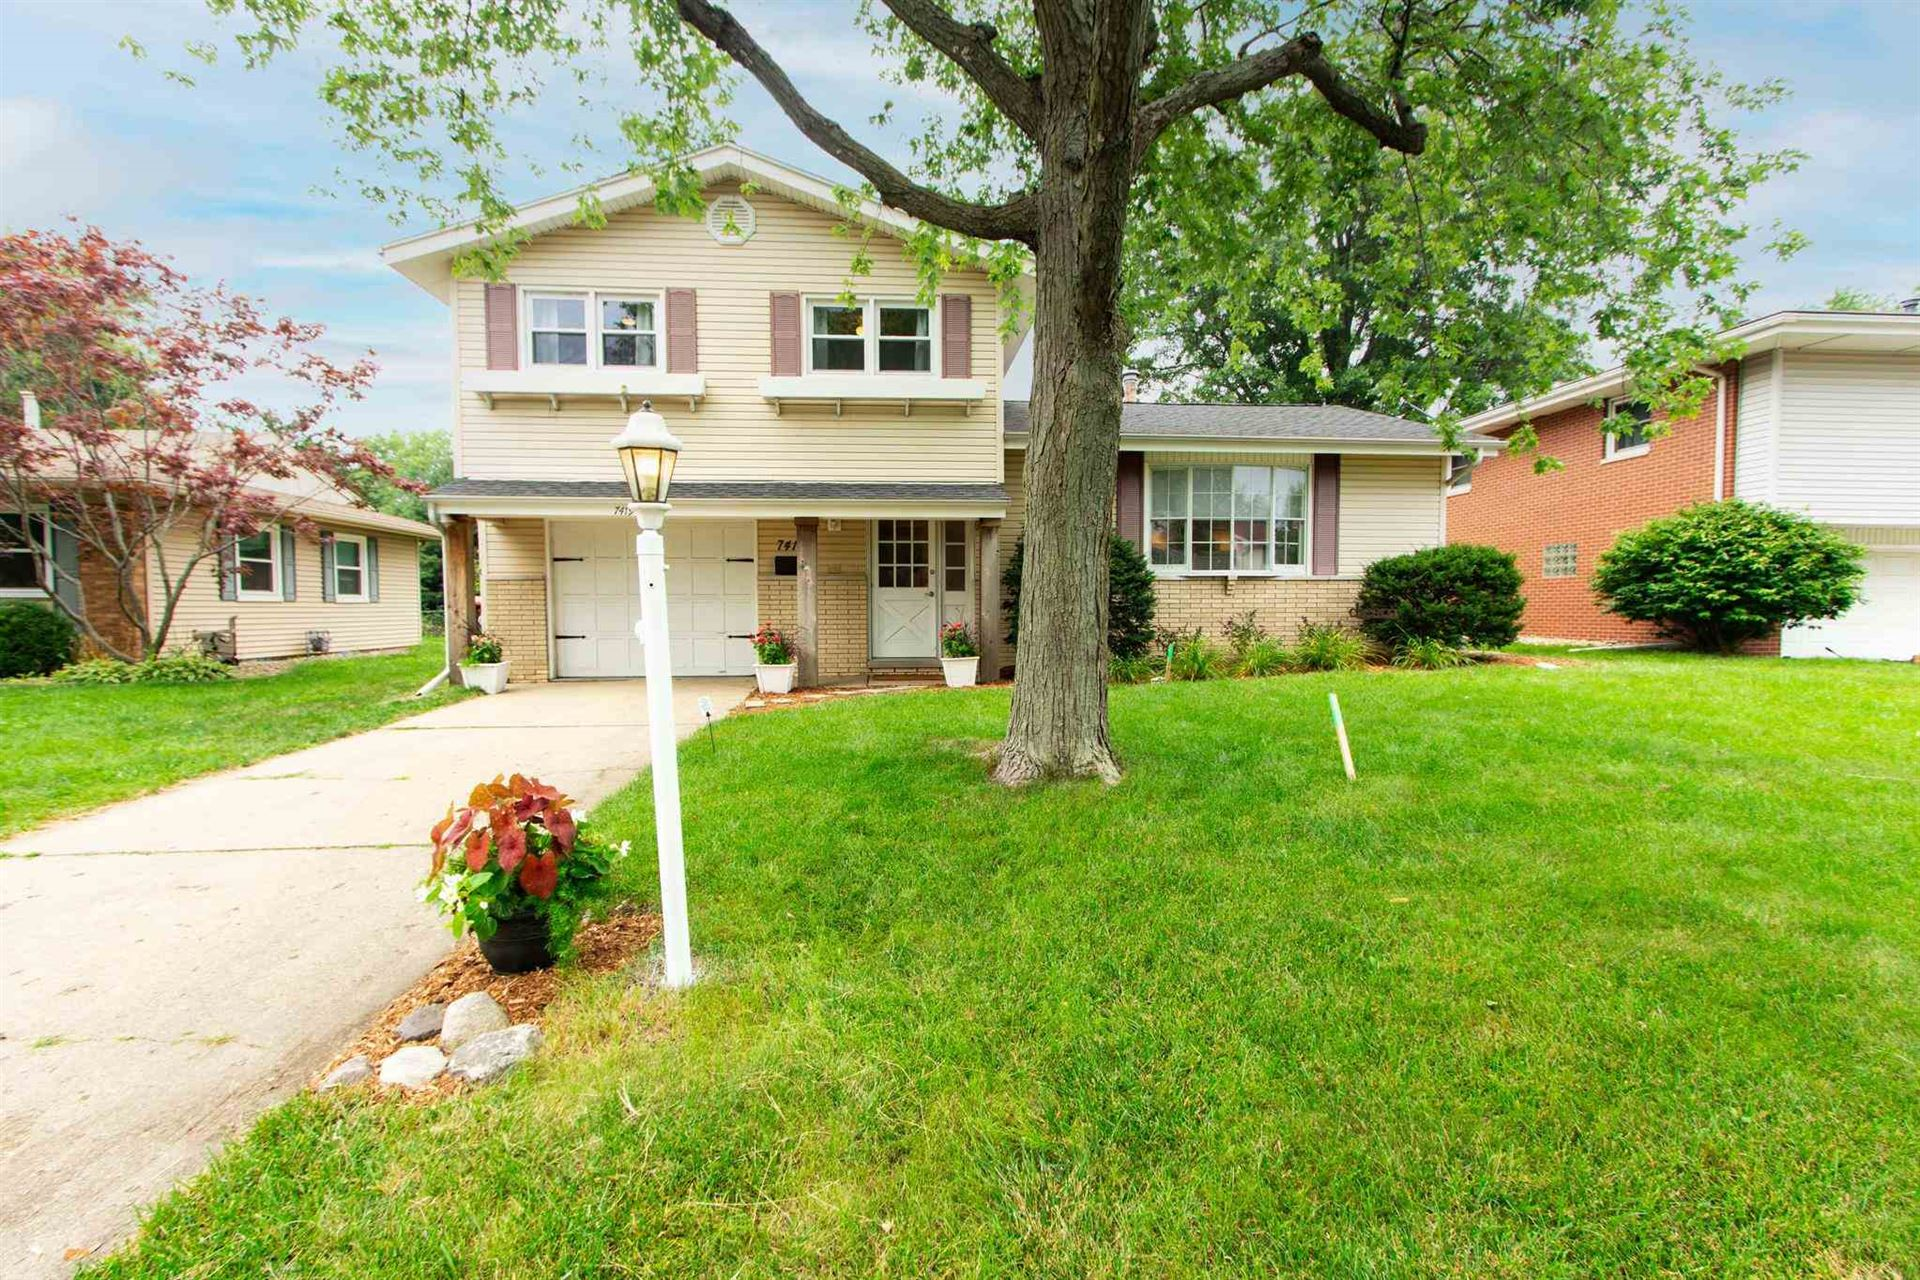 7419 N PICCADILLY, Peoria, IL 61614 - #: PA1227432